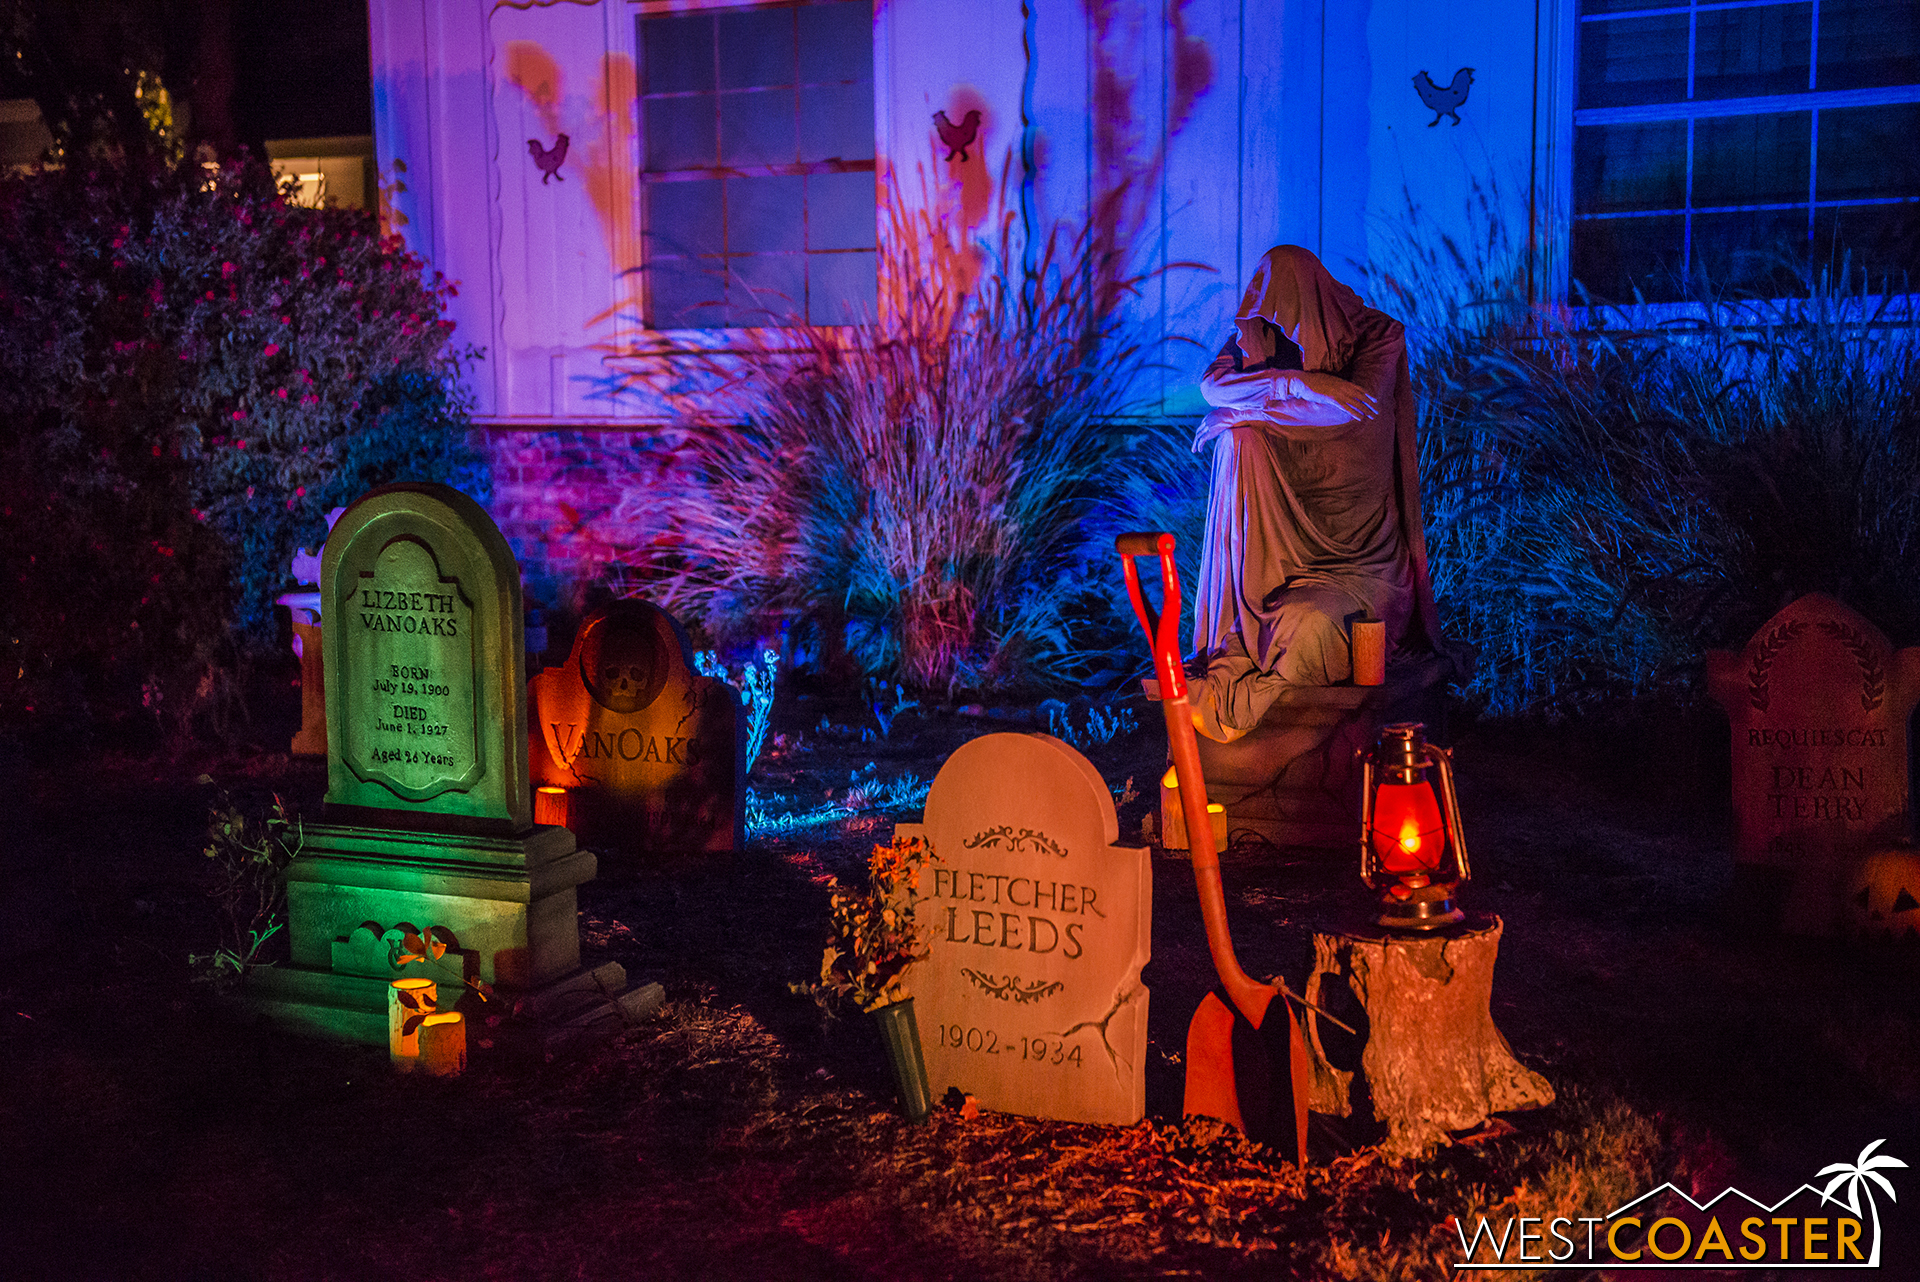 The combination of lighting, props, and a few moving elements gives this front yard cemetery a very cinematic feel.